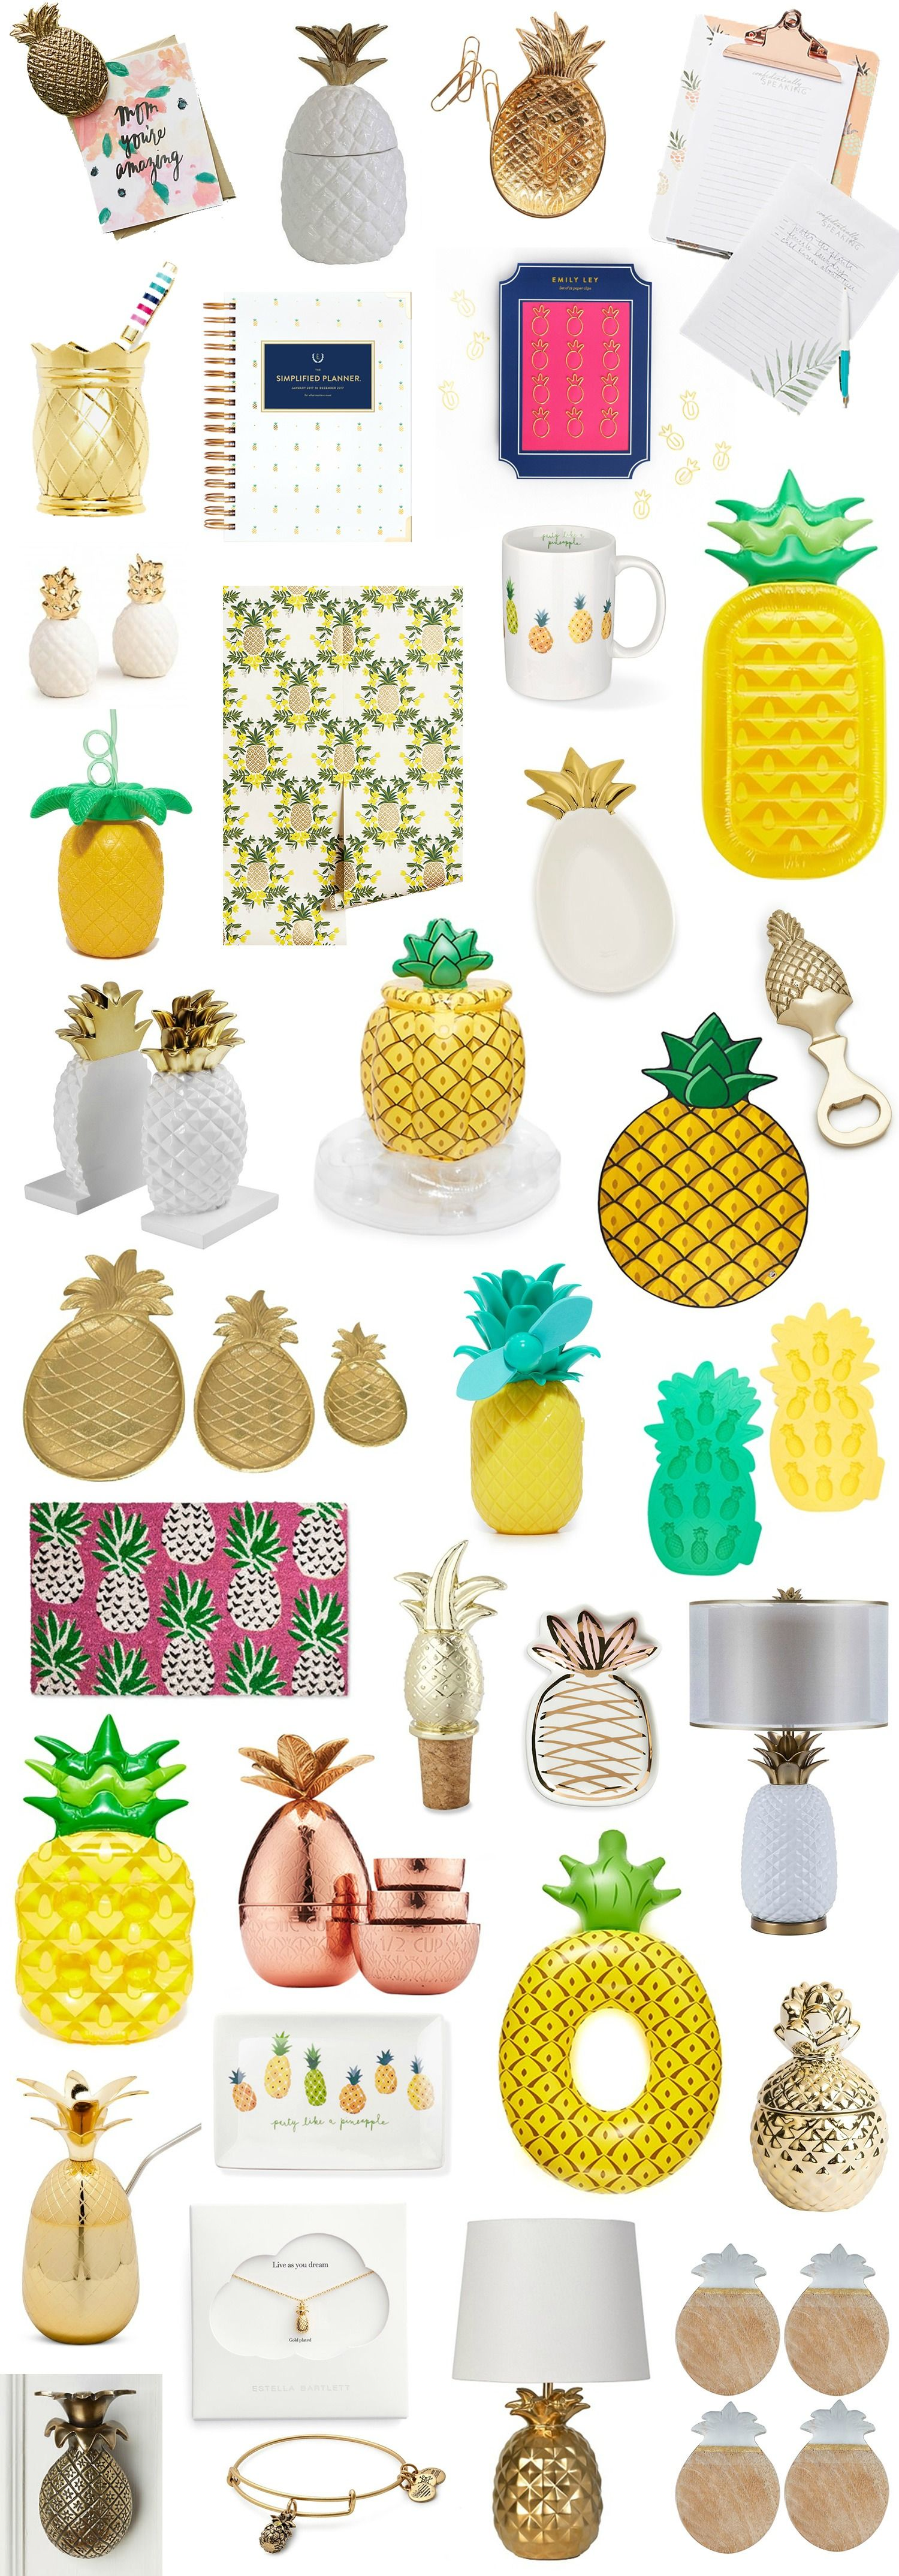 Gold Pineapple Home Decor Gift Ideas The Influenceher Collective